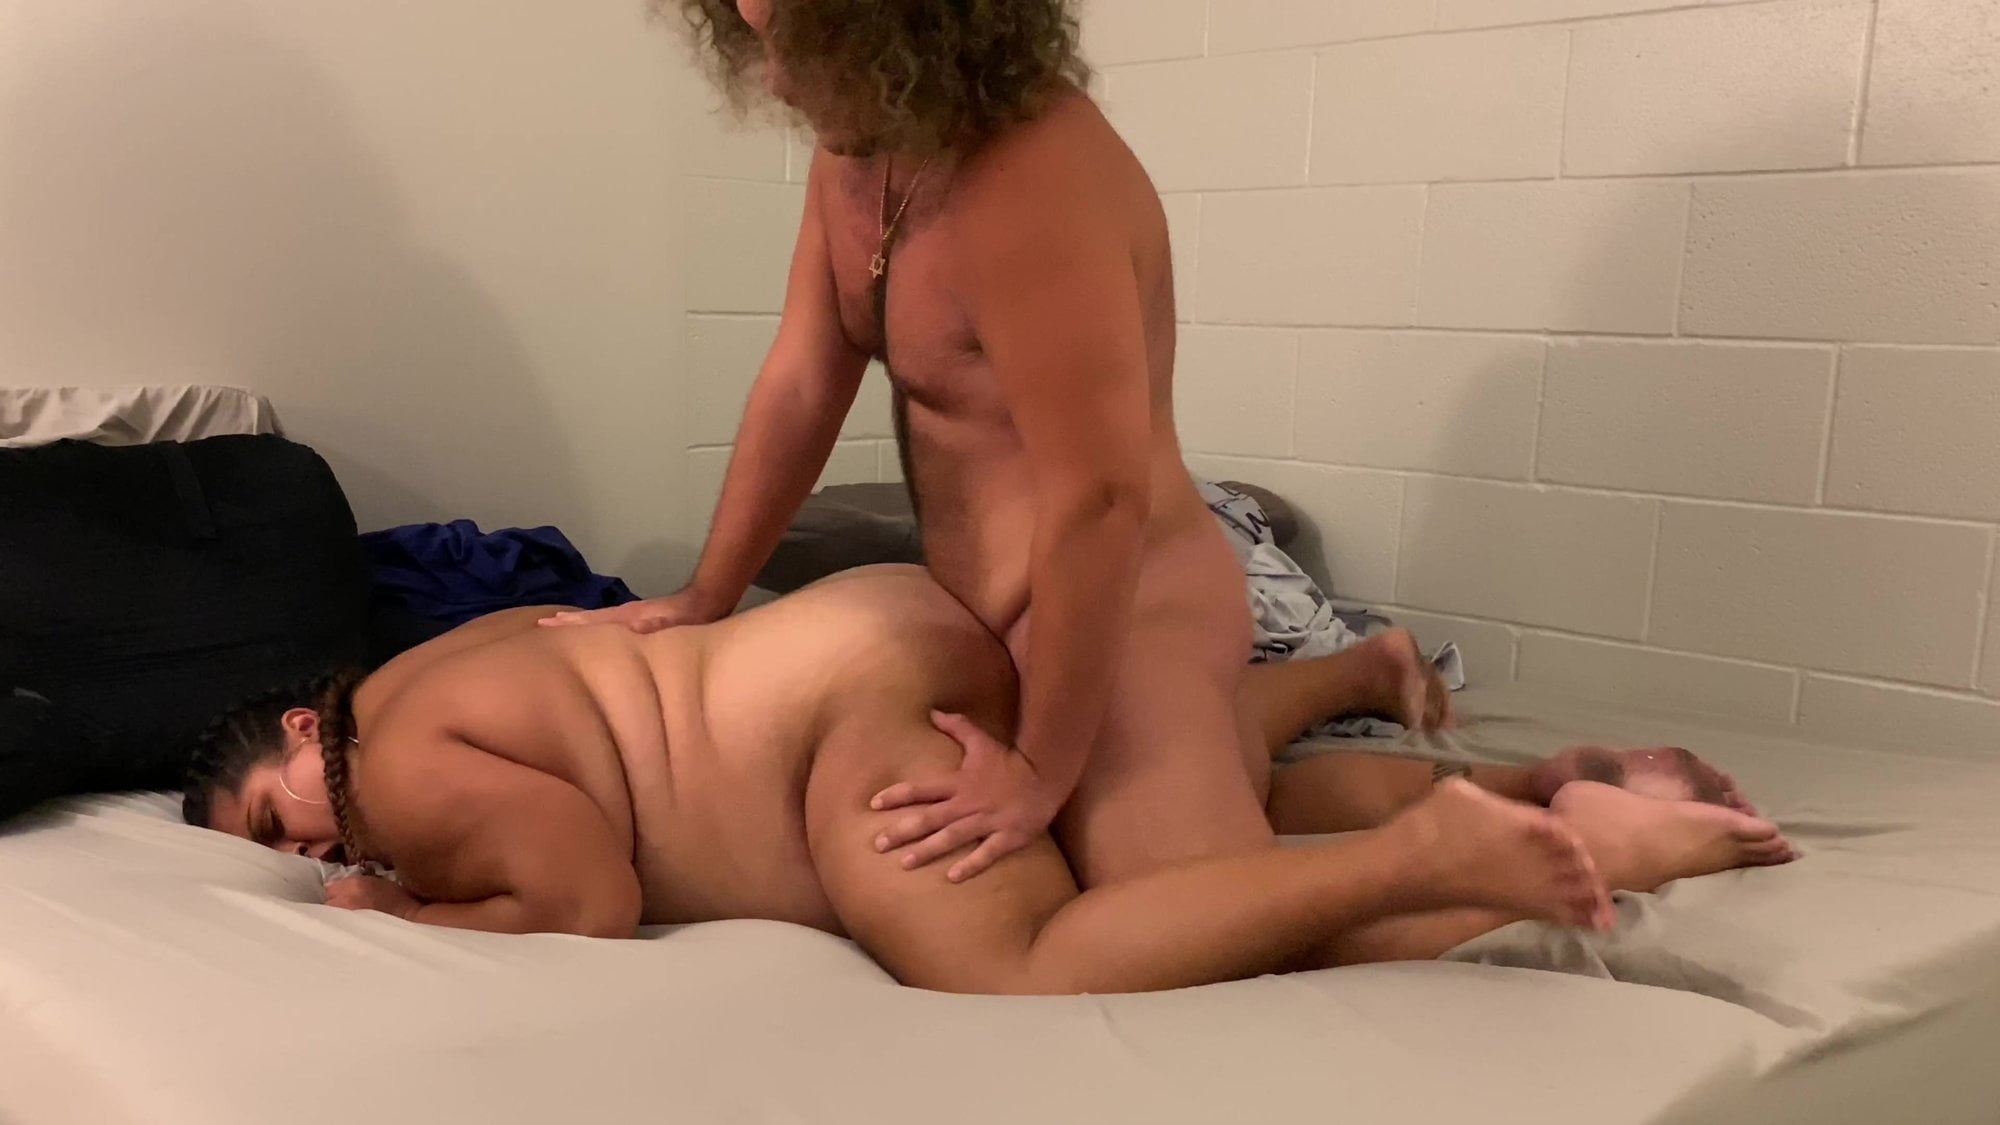 Thelin recommend Girls uses anal toys